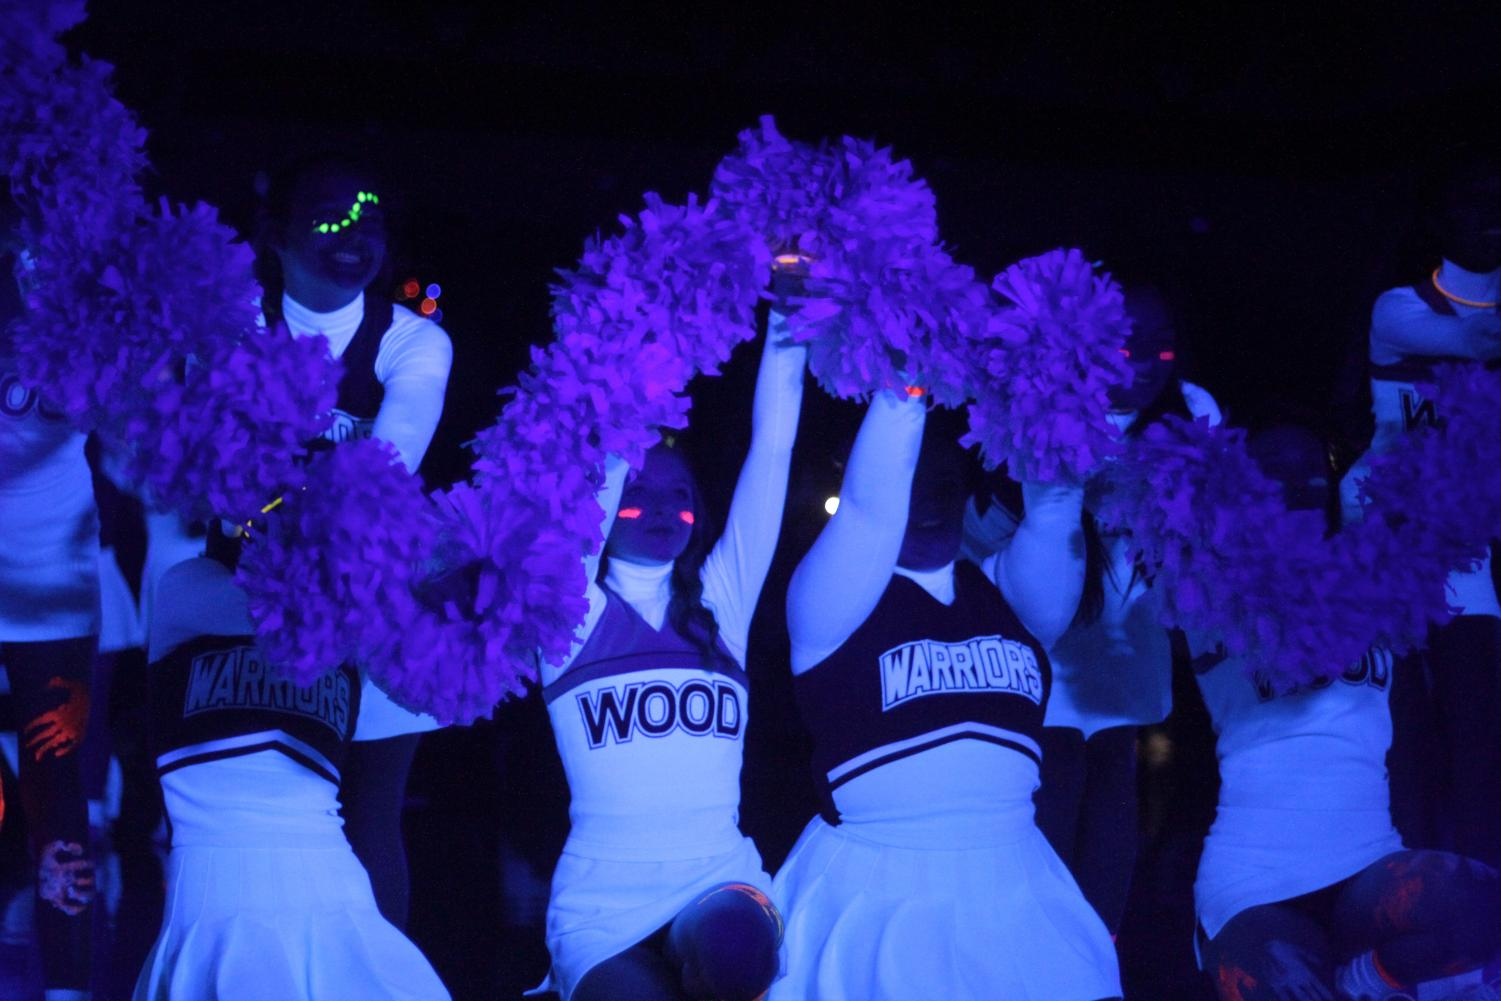 The+cheerleaders+make+a+%22w%22+with+their+pompoms.+This+was+in+the+beginning+of+their+routine+for+the+pep+rally.